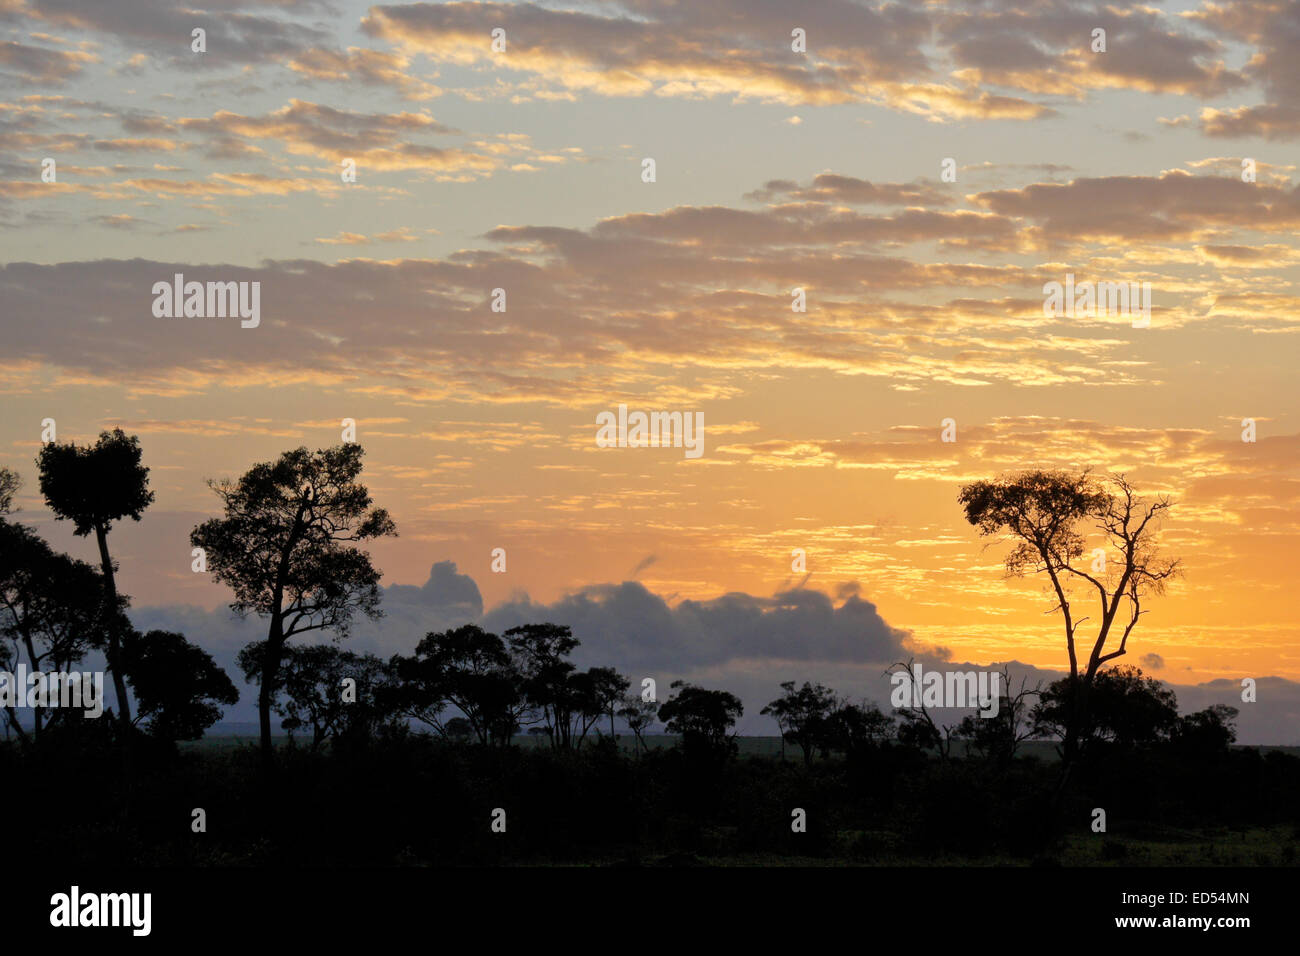 Sunrise on the Masai Mara, Kenya - Stock Image